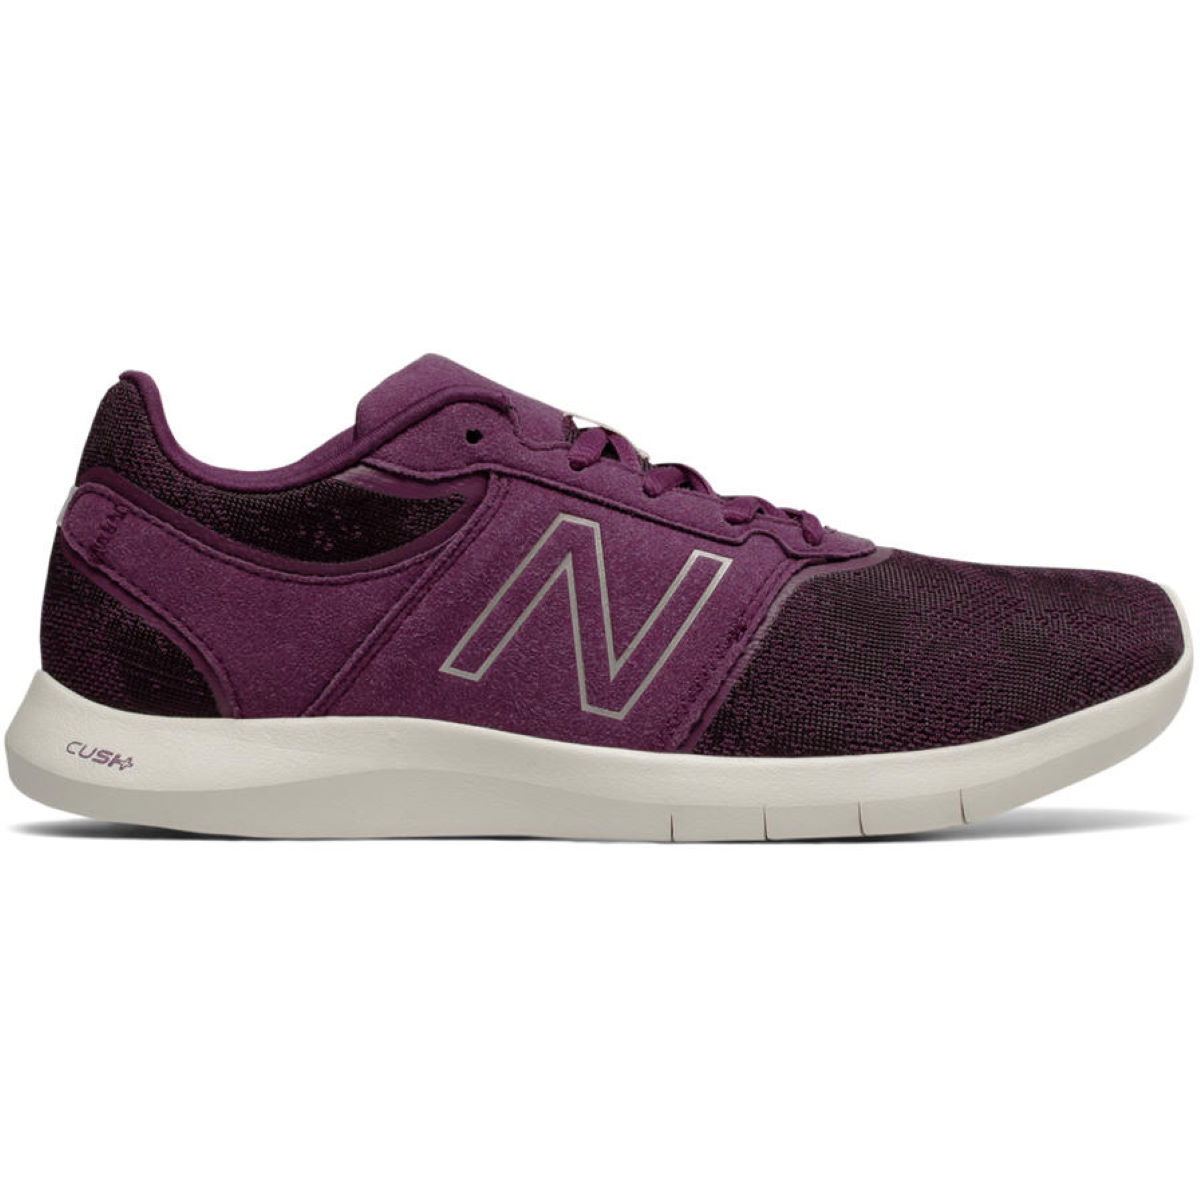 Chaussures Femme New Balance WL415 v1 - UK 4 Mulberry